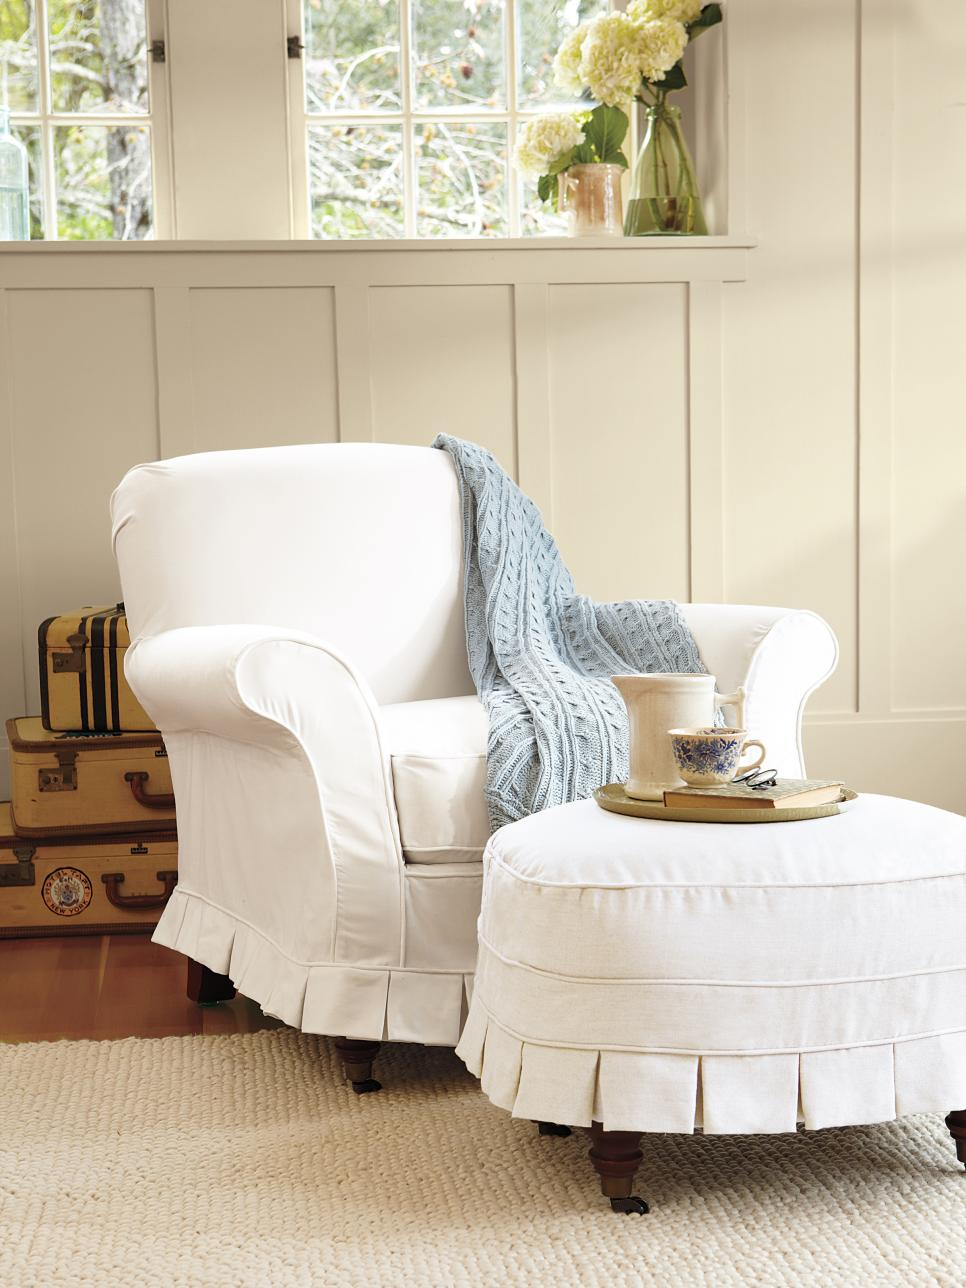 Slipcovers for Chairs, Ottomans and More